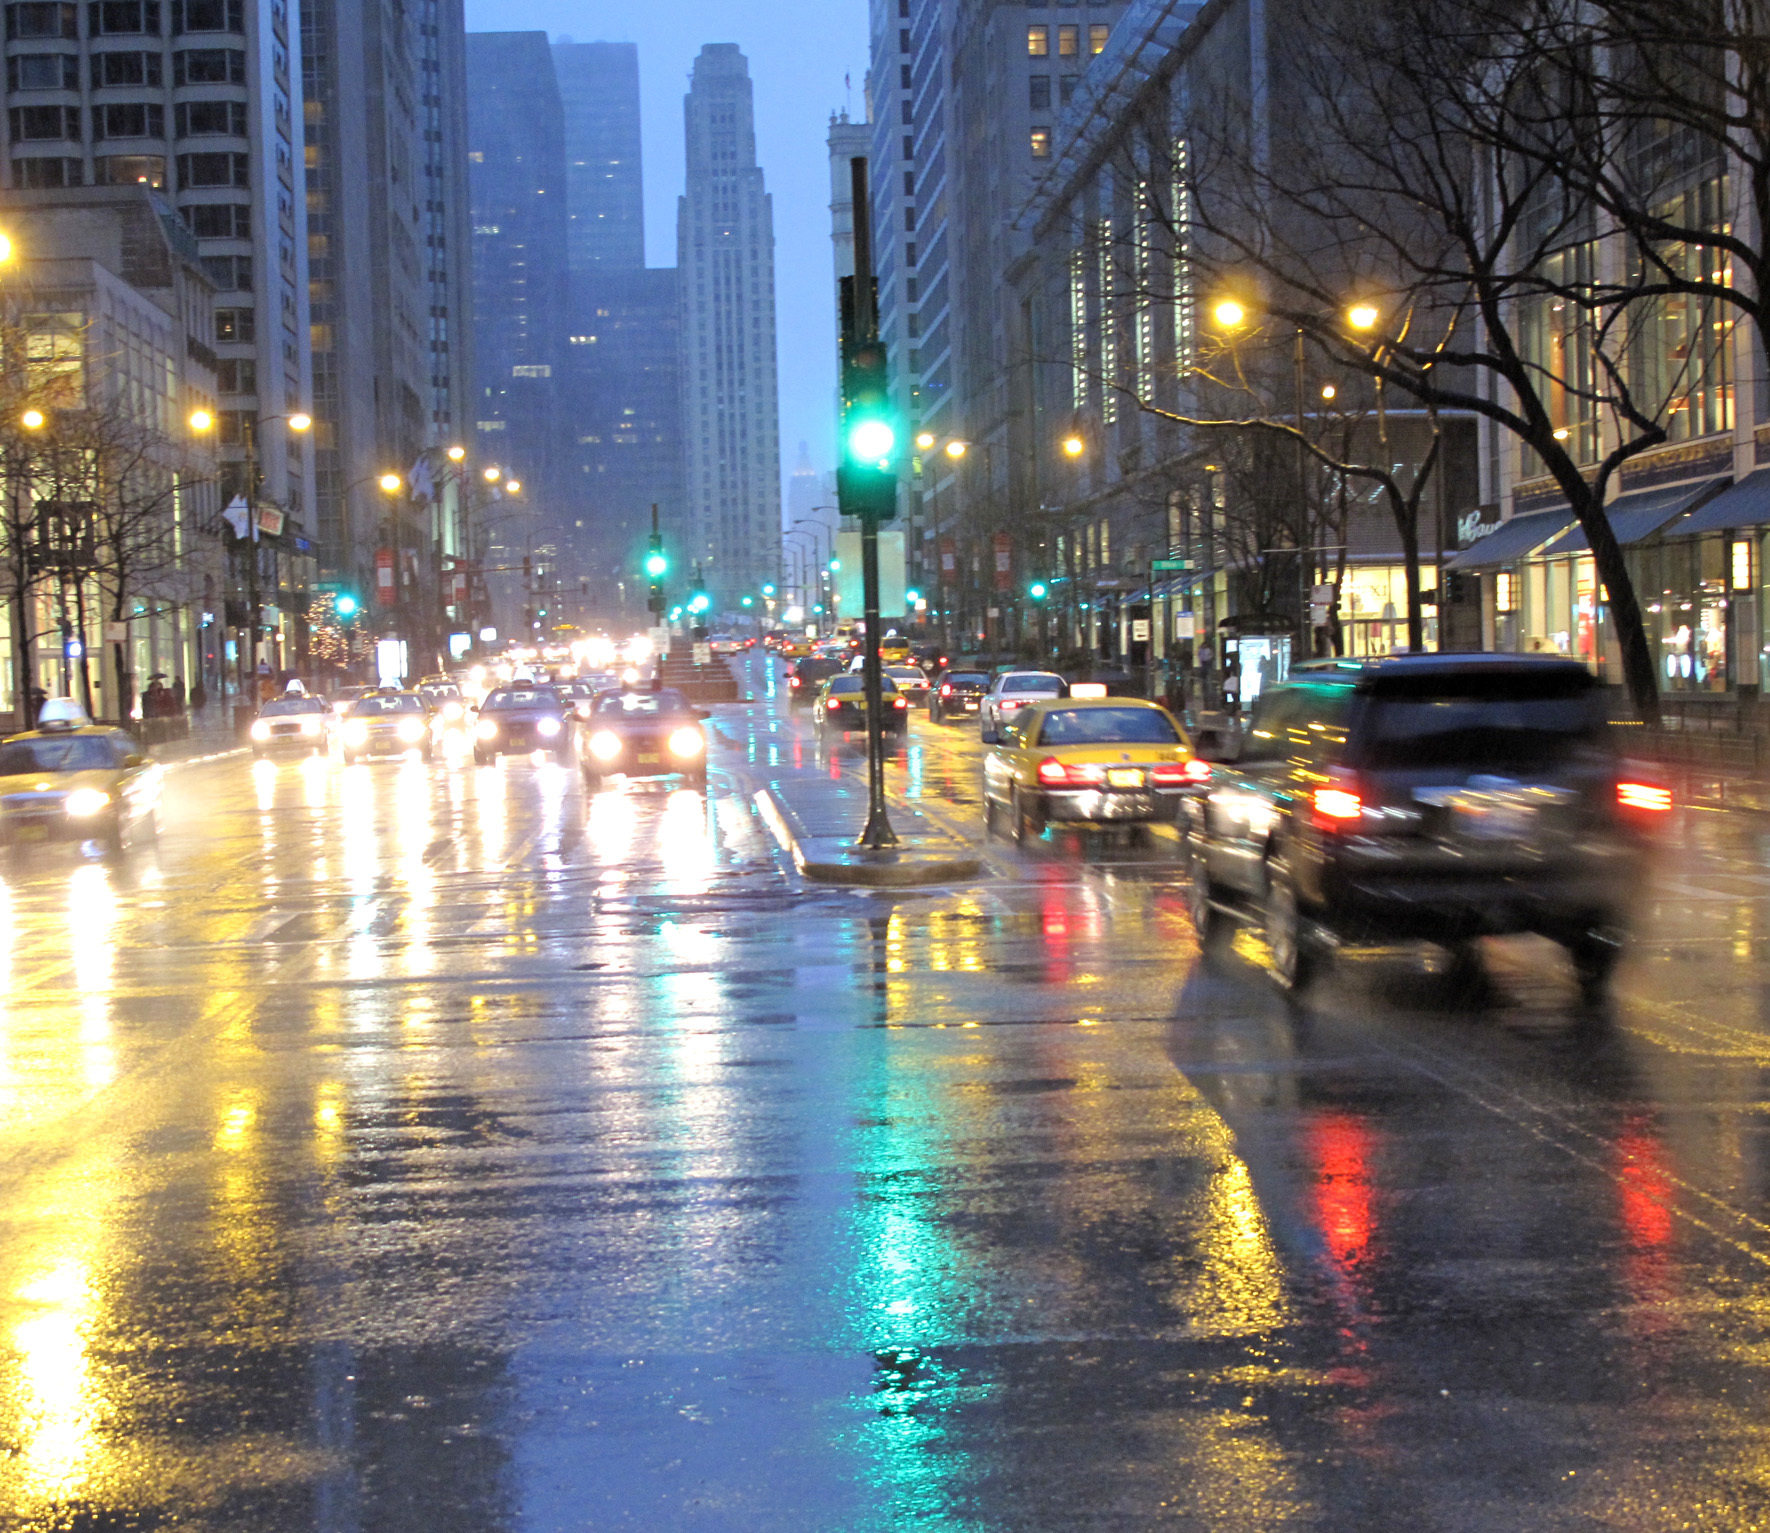 cityscapes streets rain cars HD Wallpaper